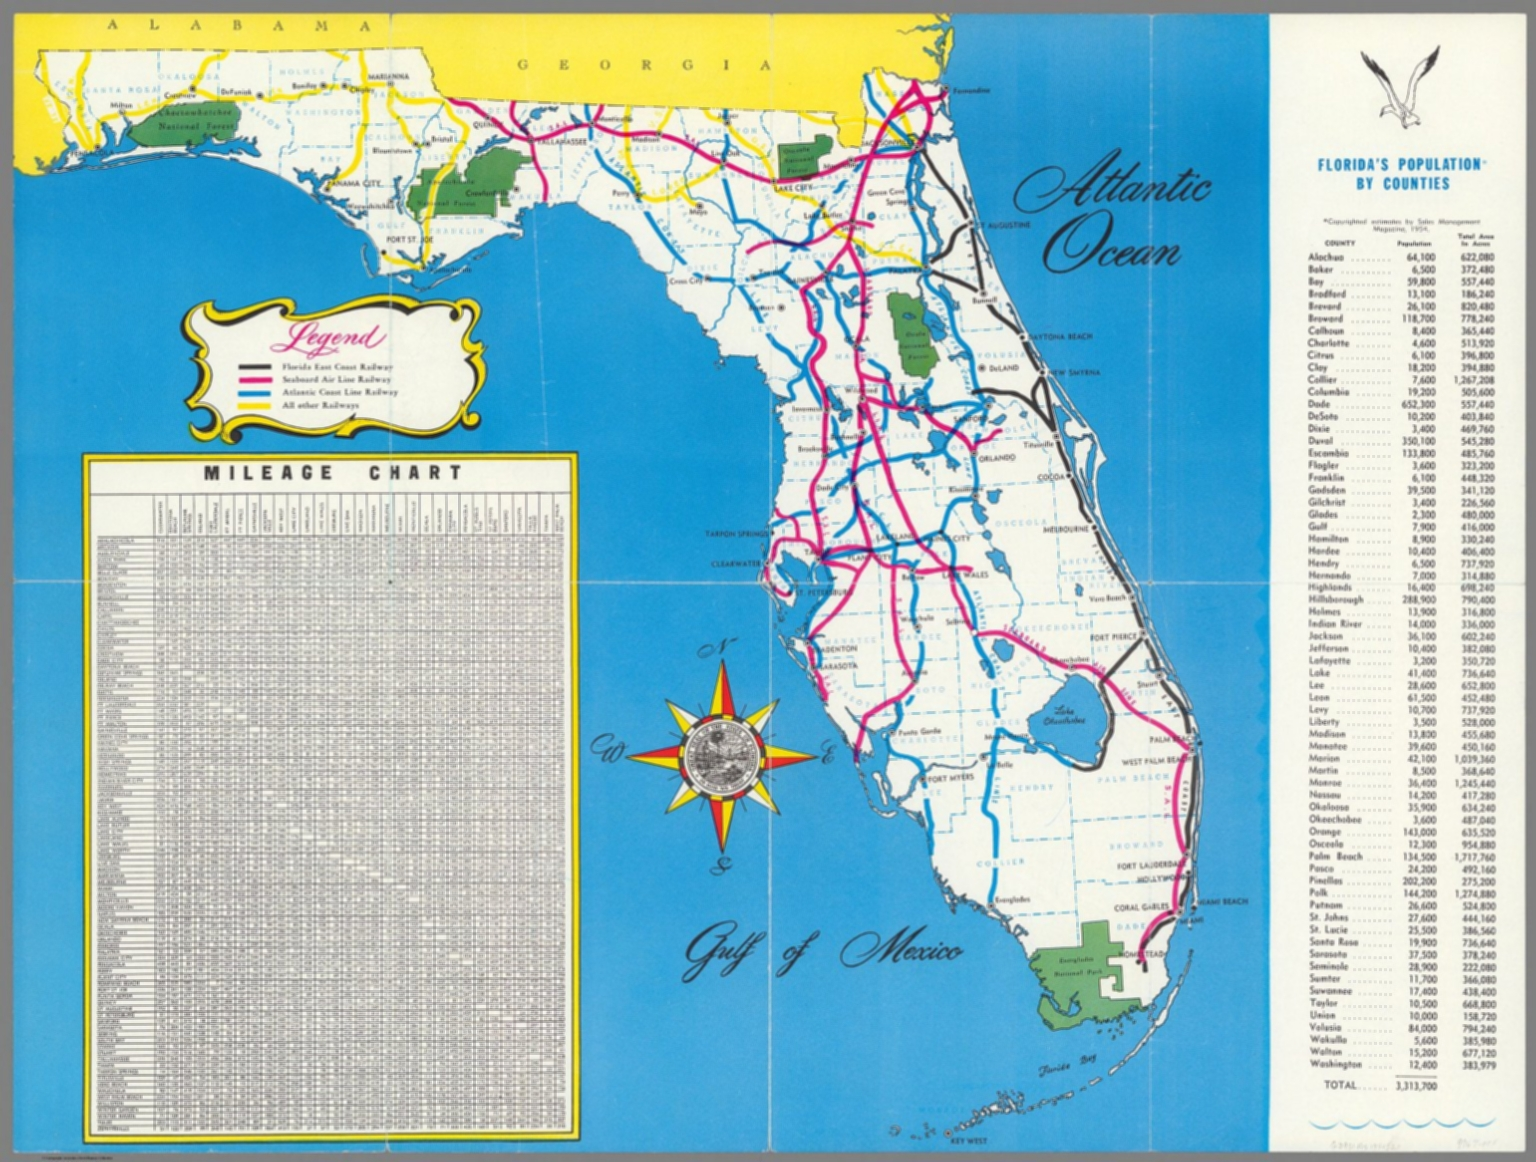 Florida Population Map.Florida S Population By Counties David Rumsey Historical Map